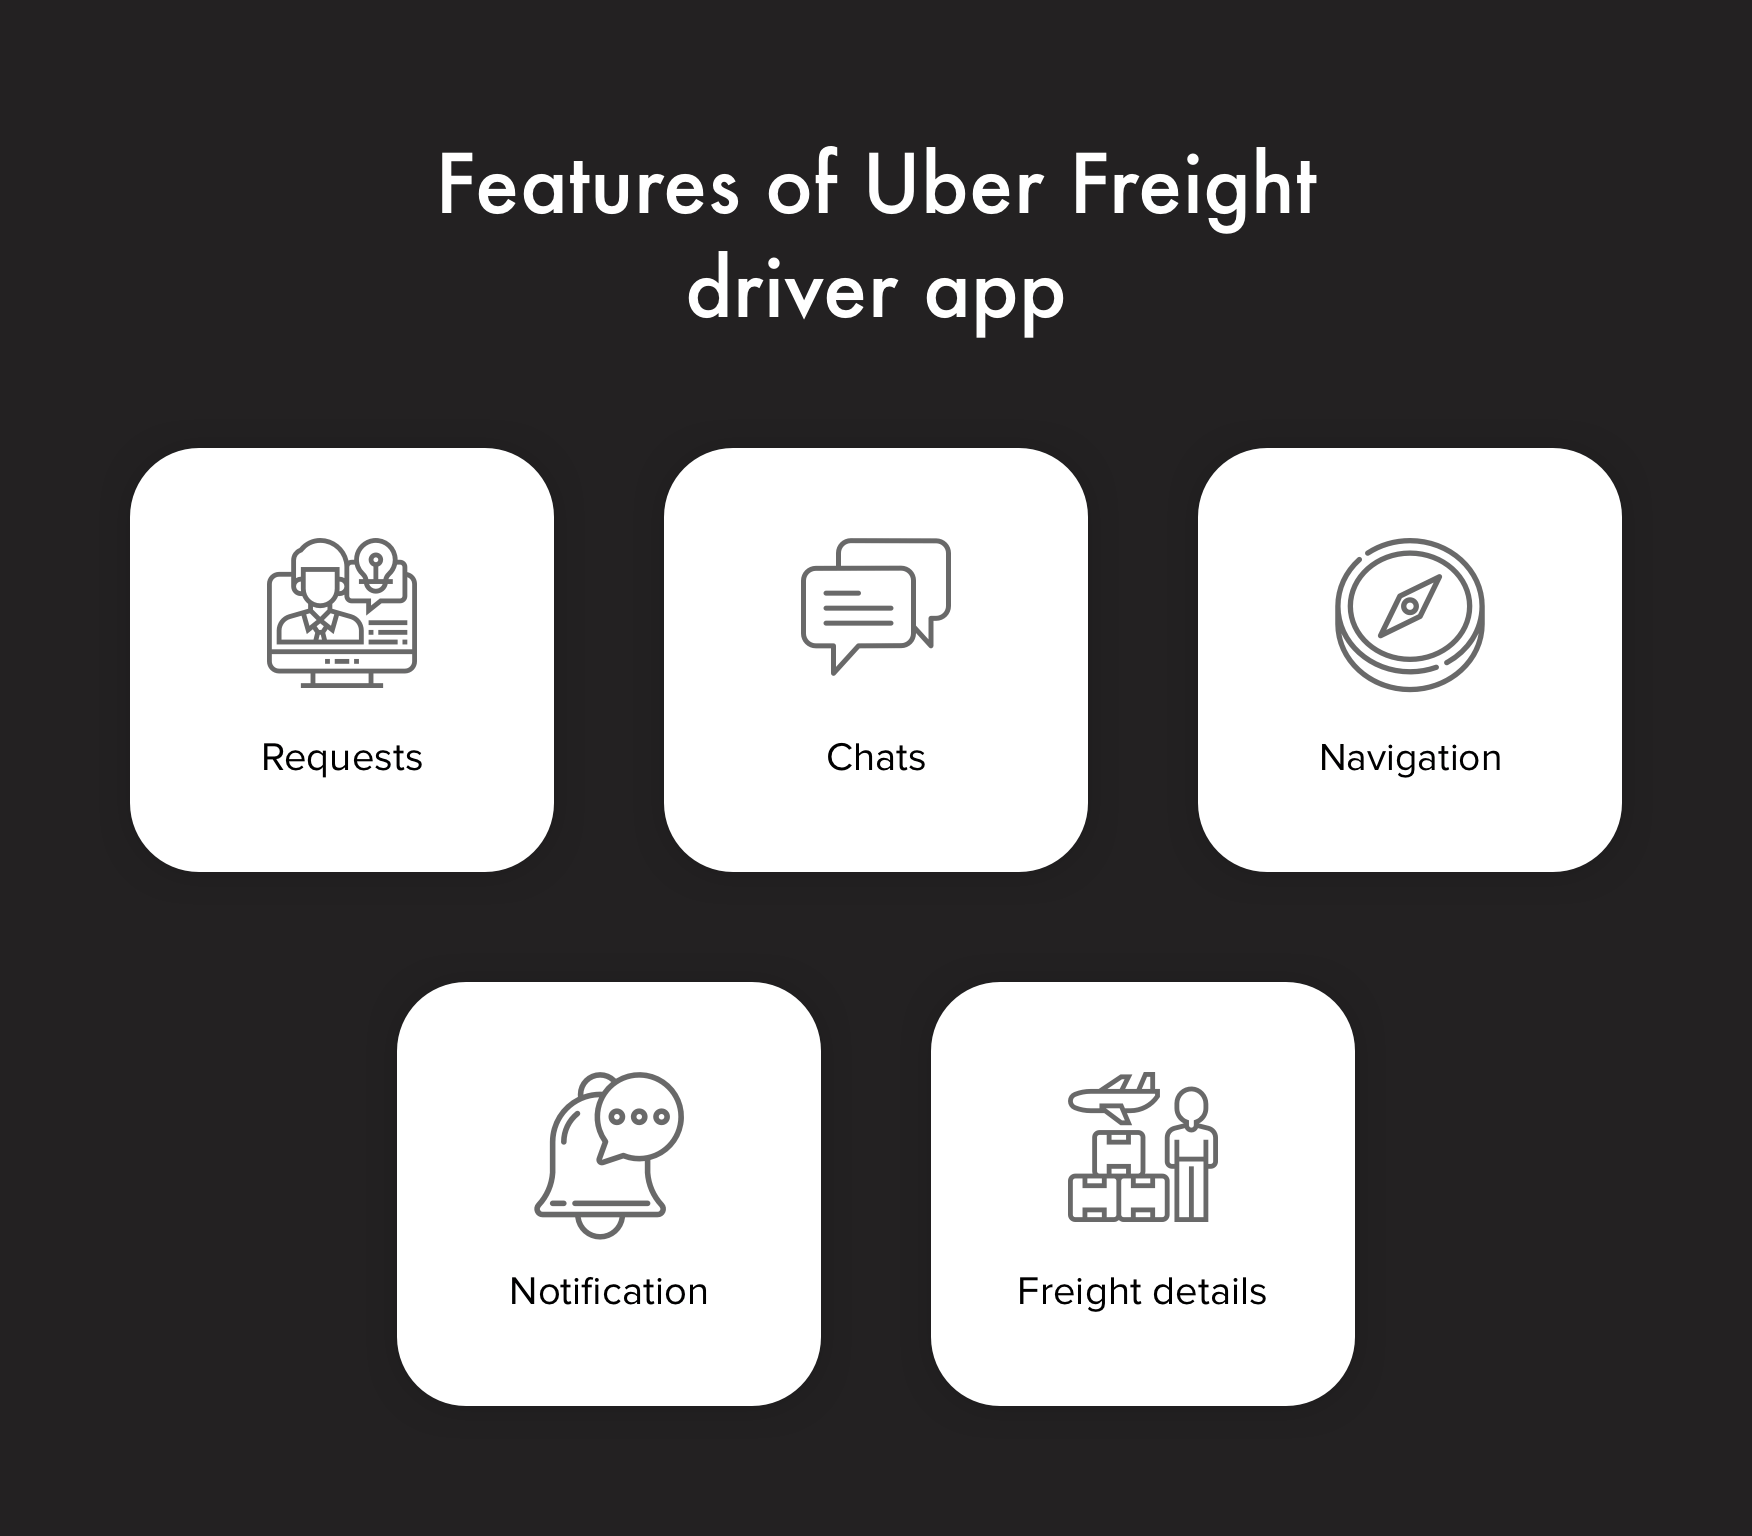 Basic features of Uber for trucking driver app